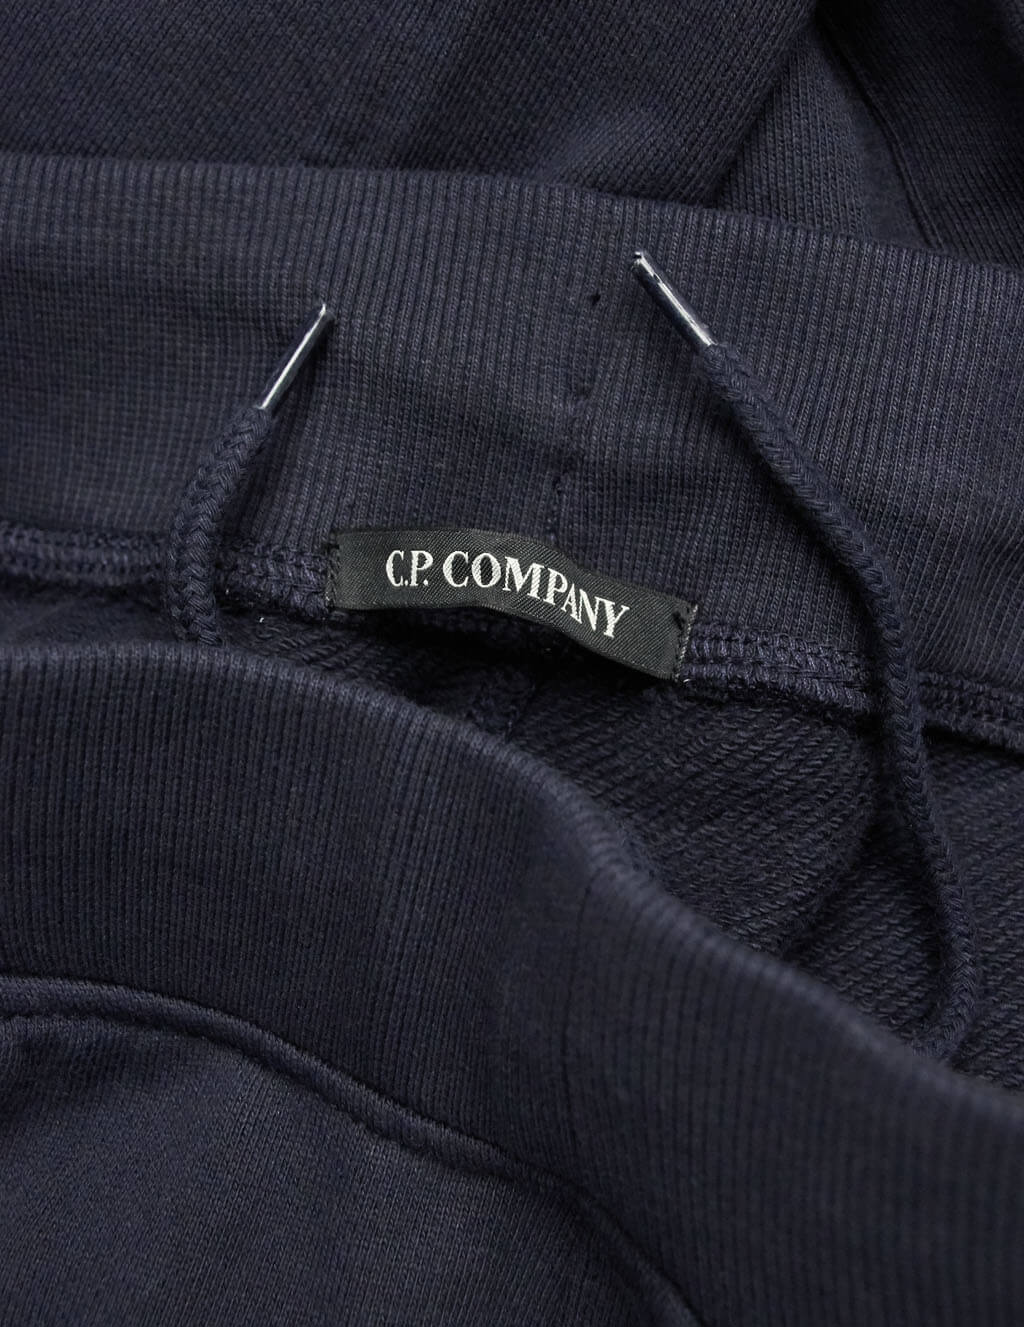 C.P. Company Men's Giulio Fashion Navy Circular Badge Sweatpants 07CMSS004A005086W888